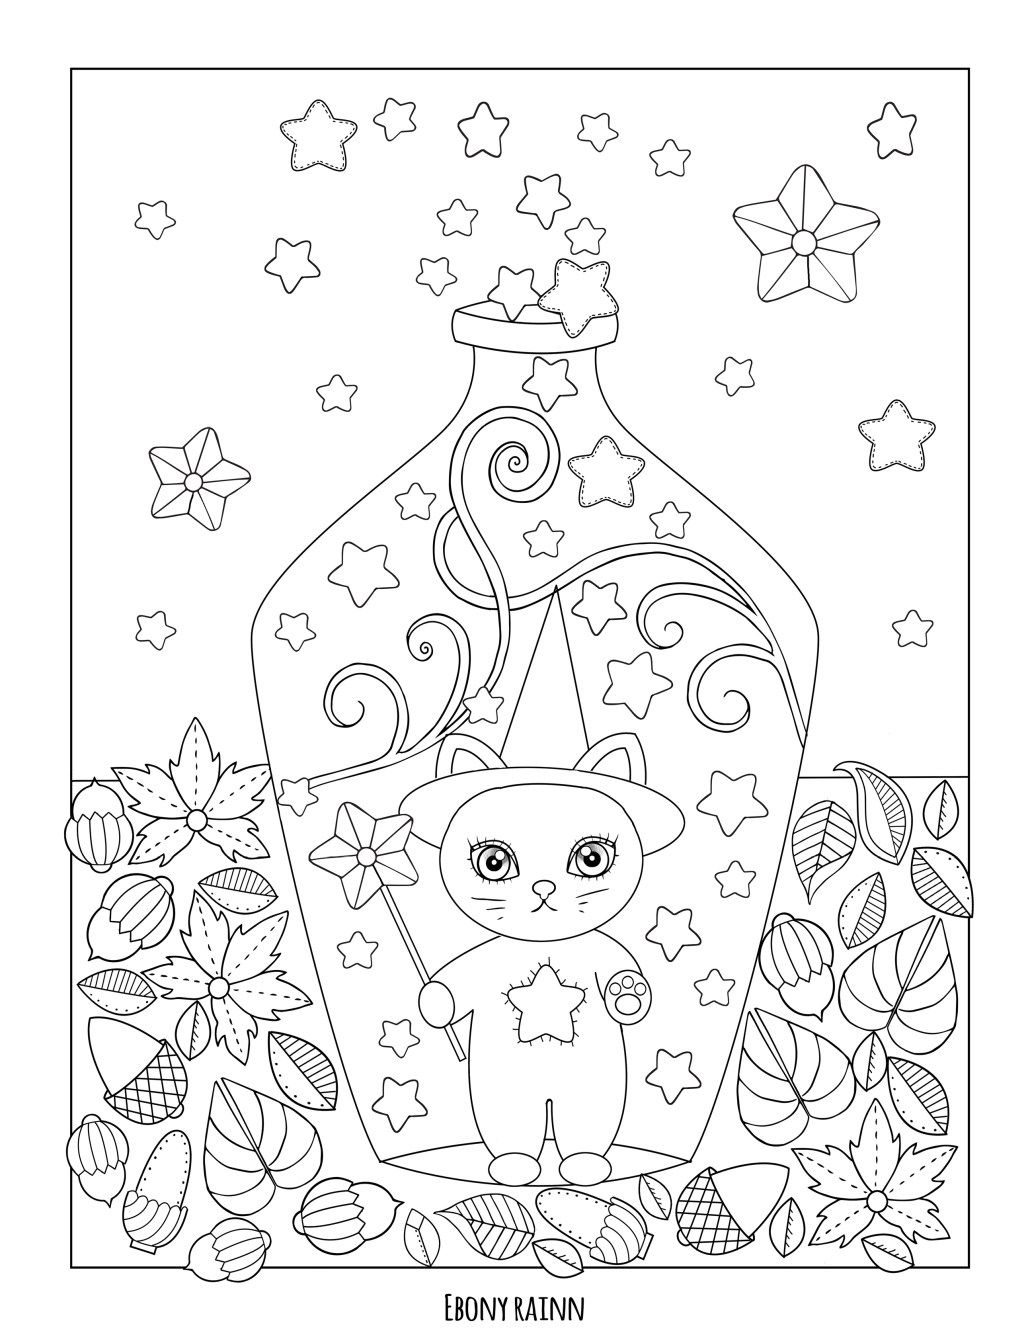 Ebony Rainn Coloring books, Cute coloring pages, Fall